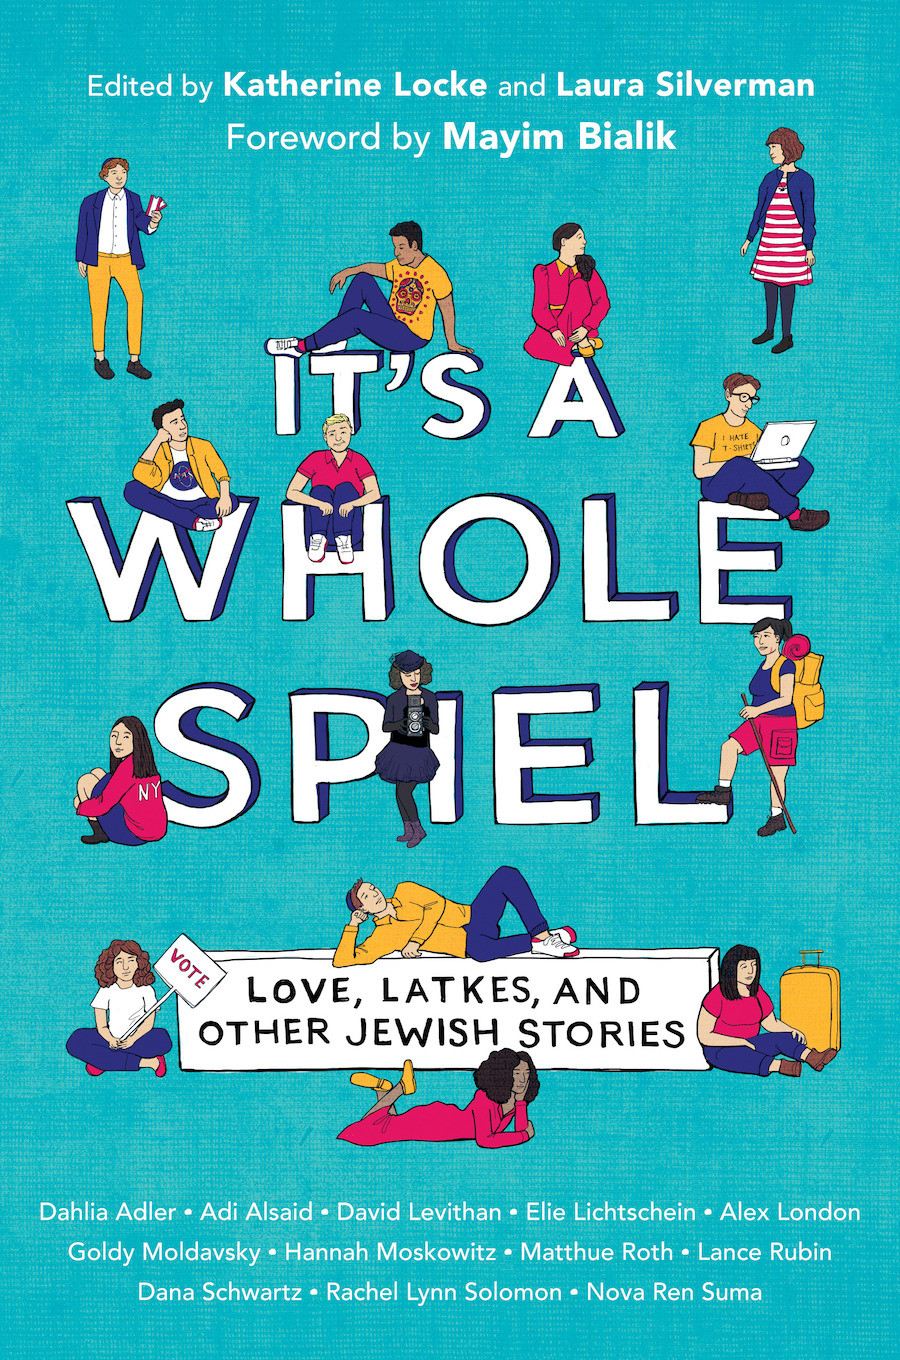 Copy of It's A While Speil: Love, Latkes, and Other Jewish Stories